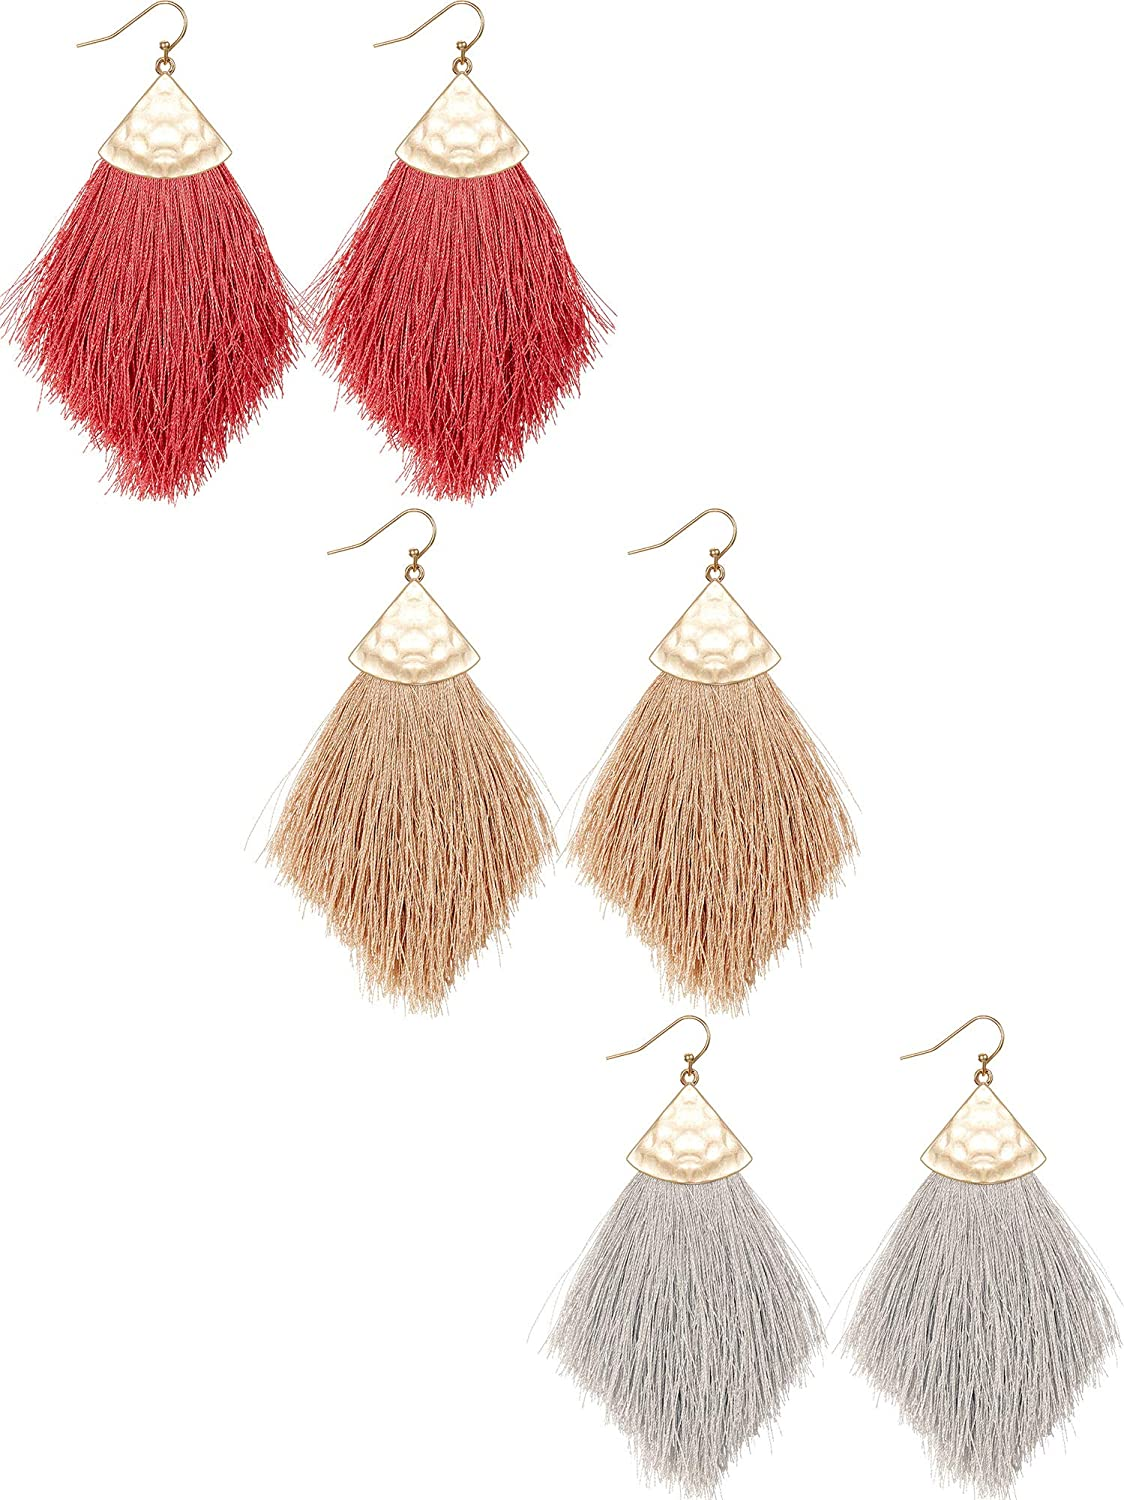 Colorful Bohemian Feather Dangle Drop Earring Gifts for Women Girls Jewelry000001000586